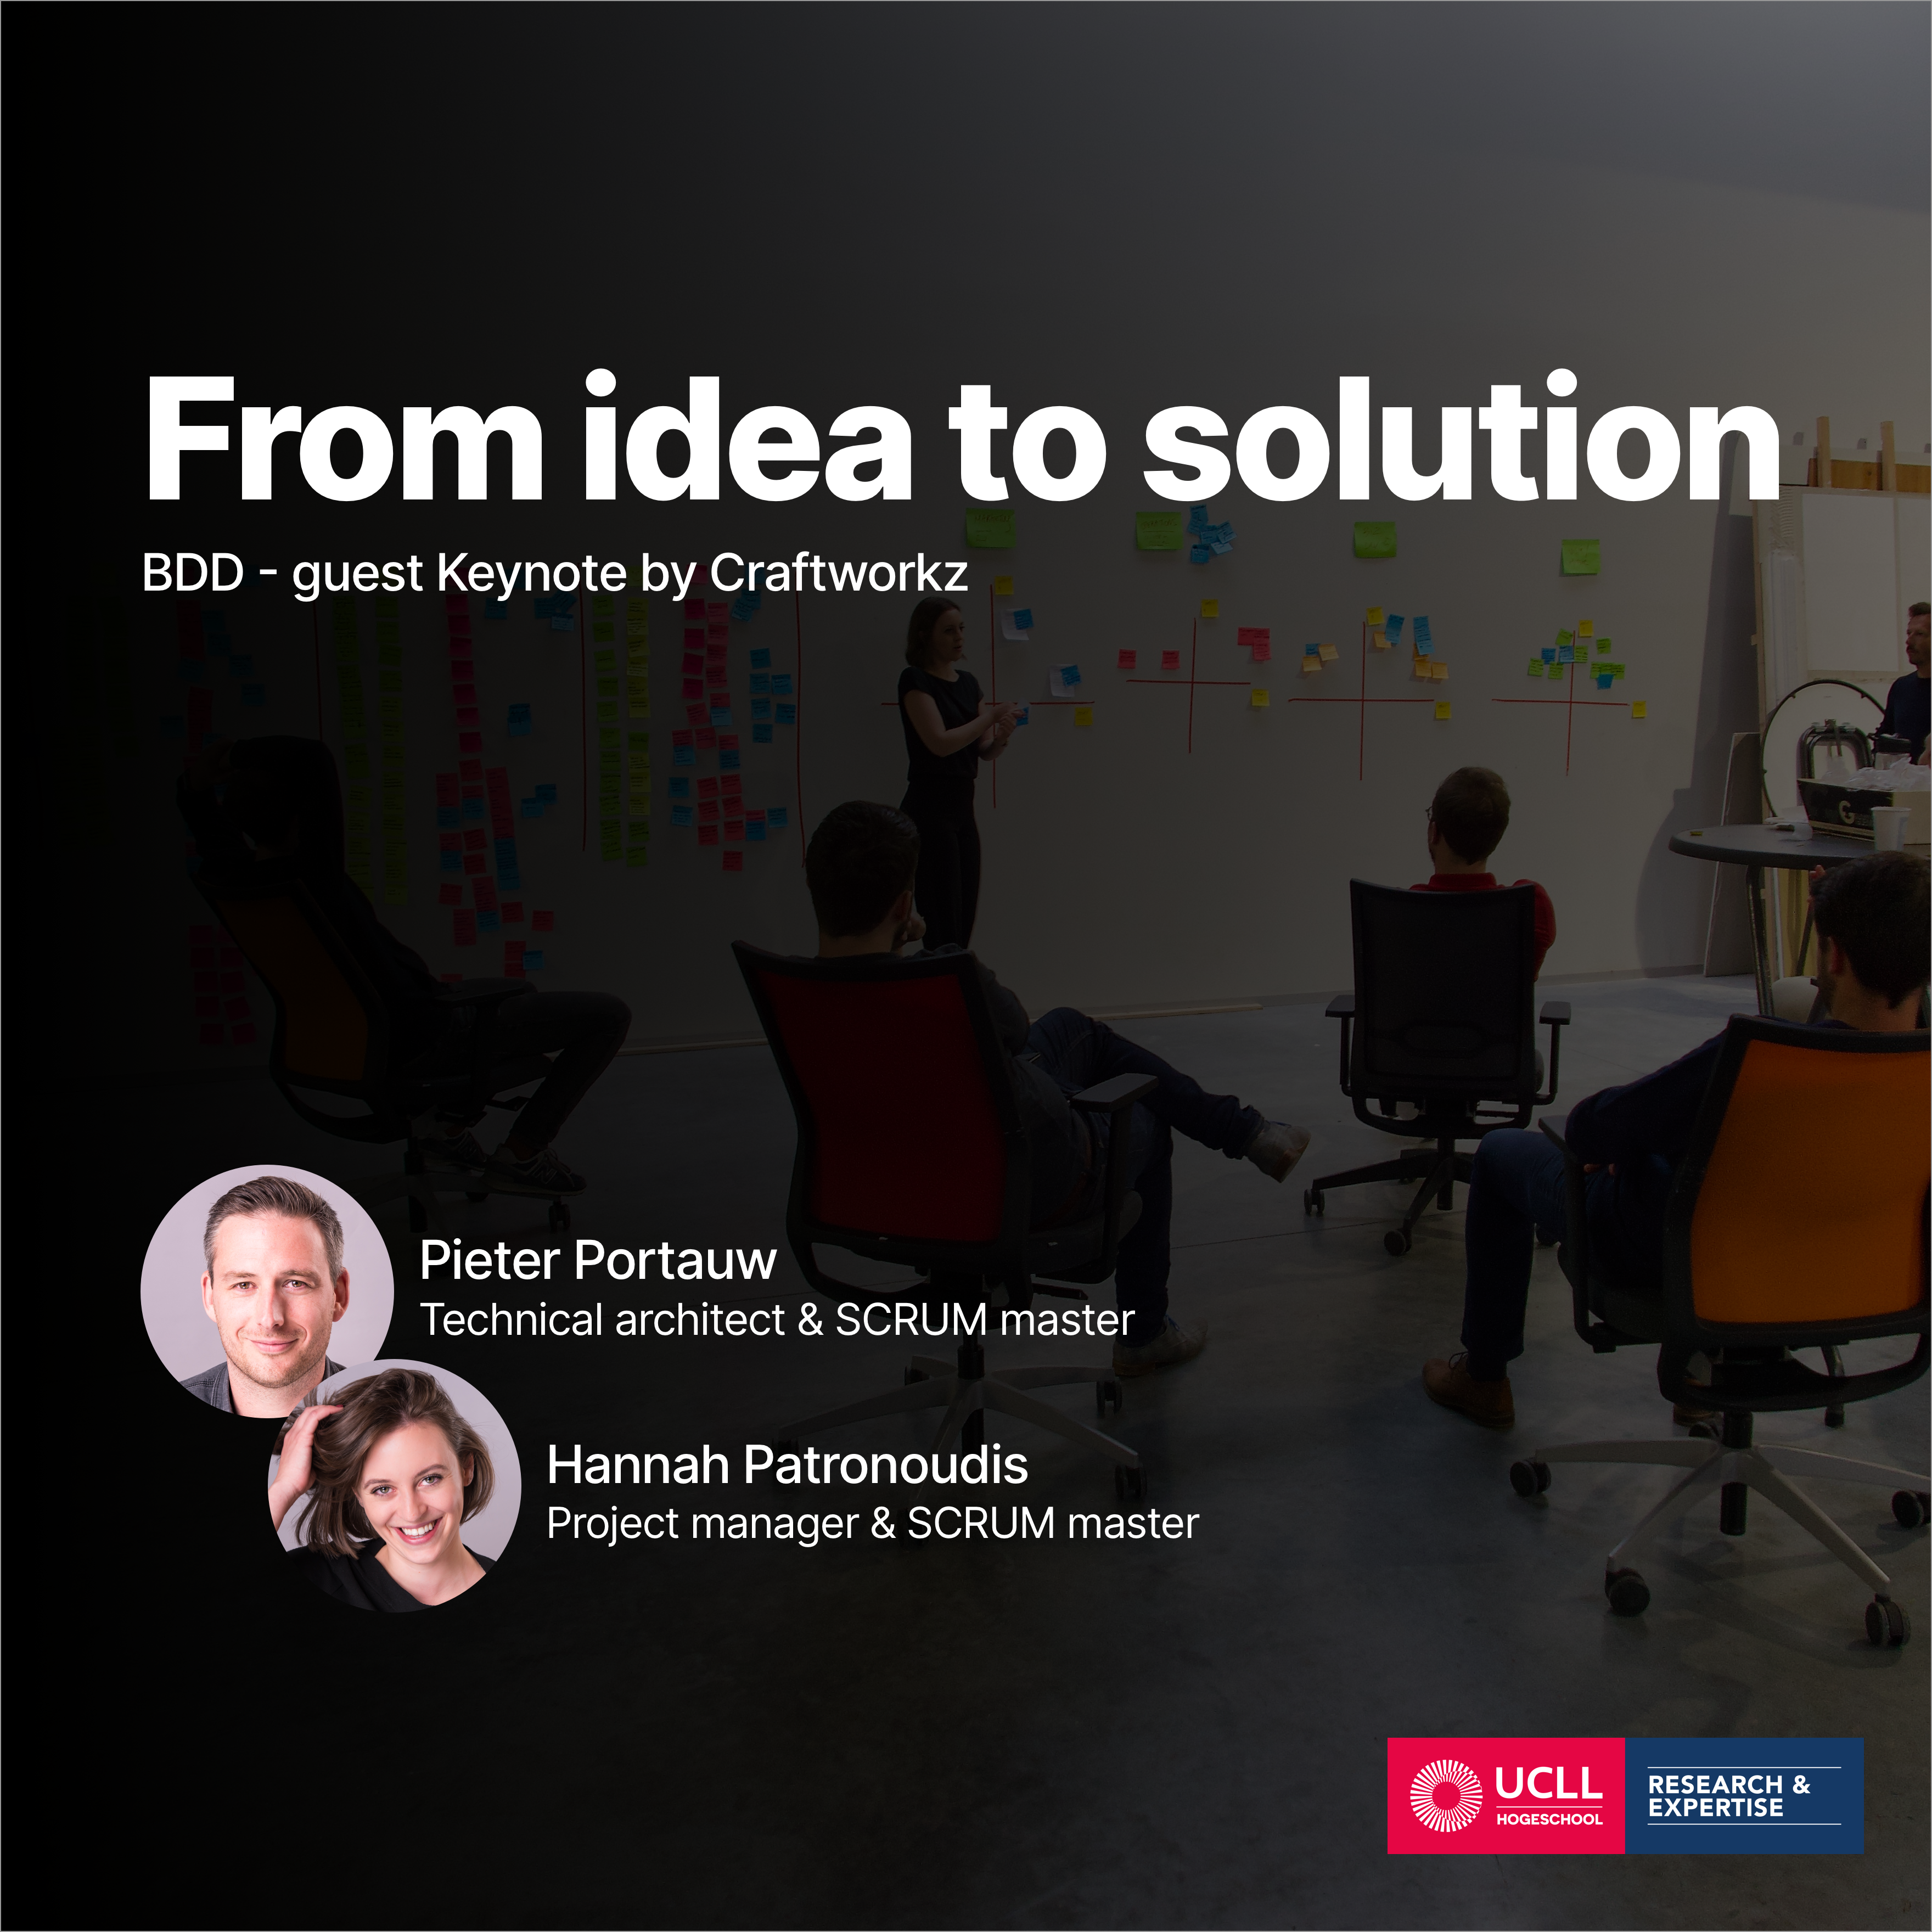 From idea to solution